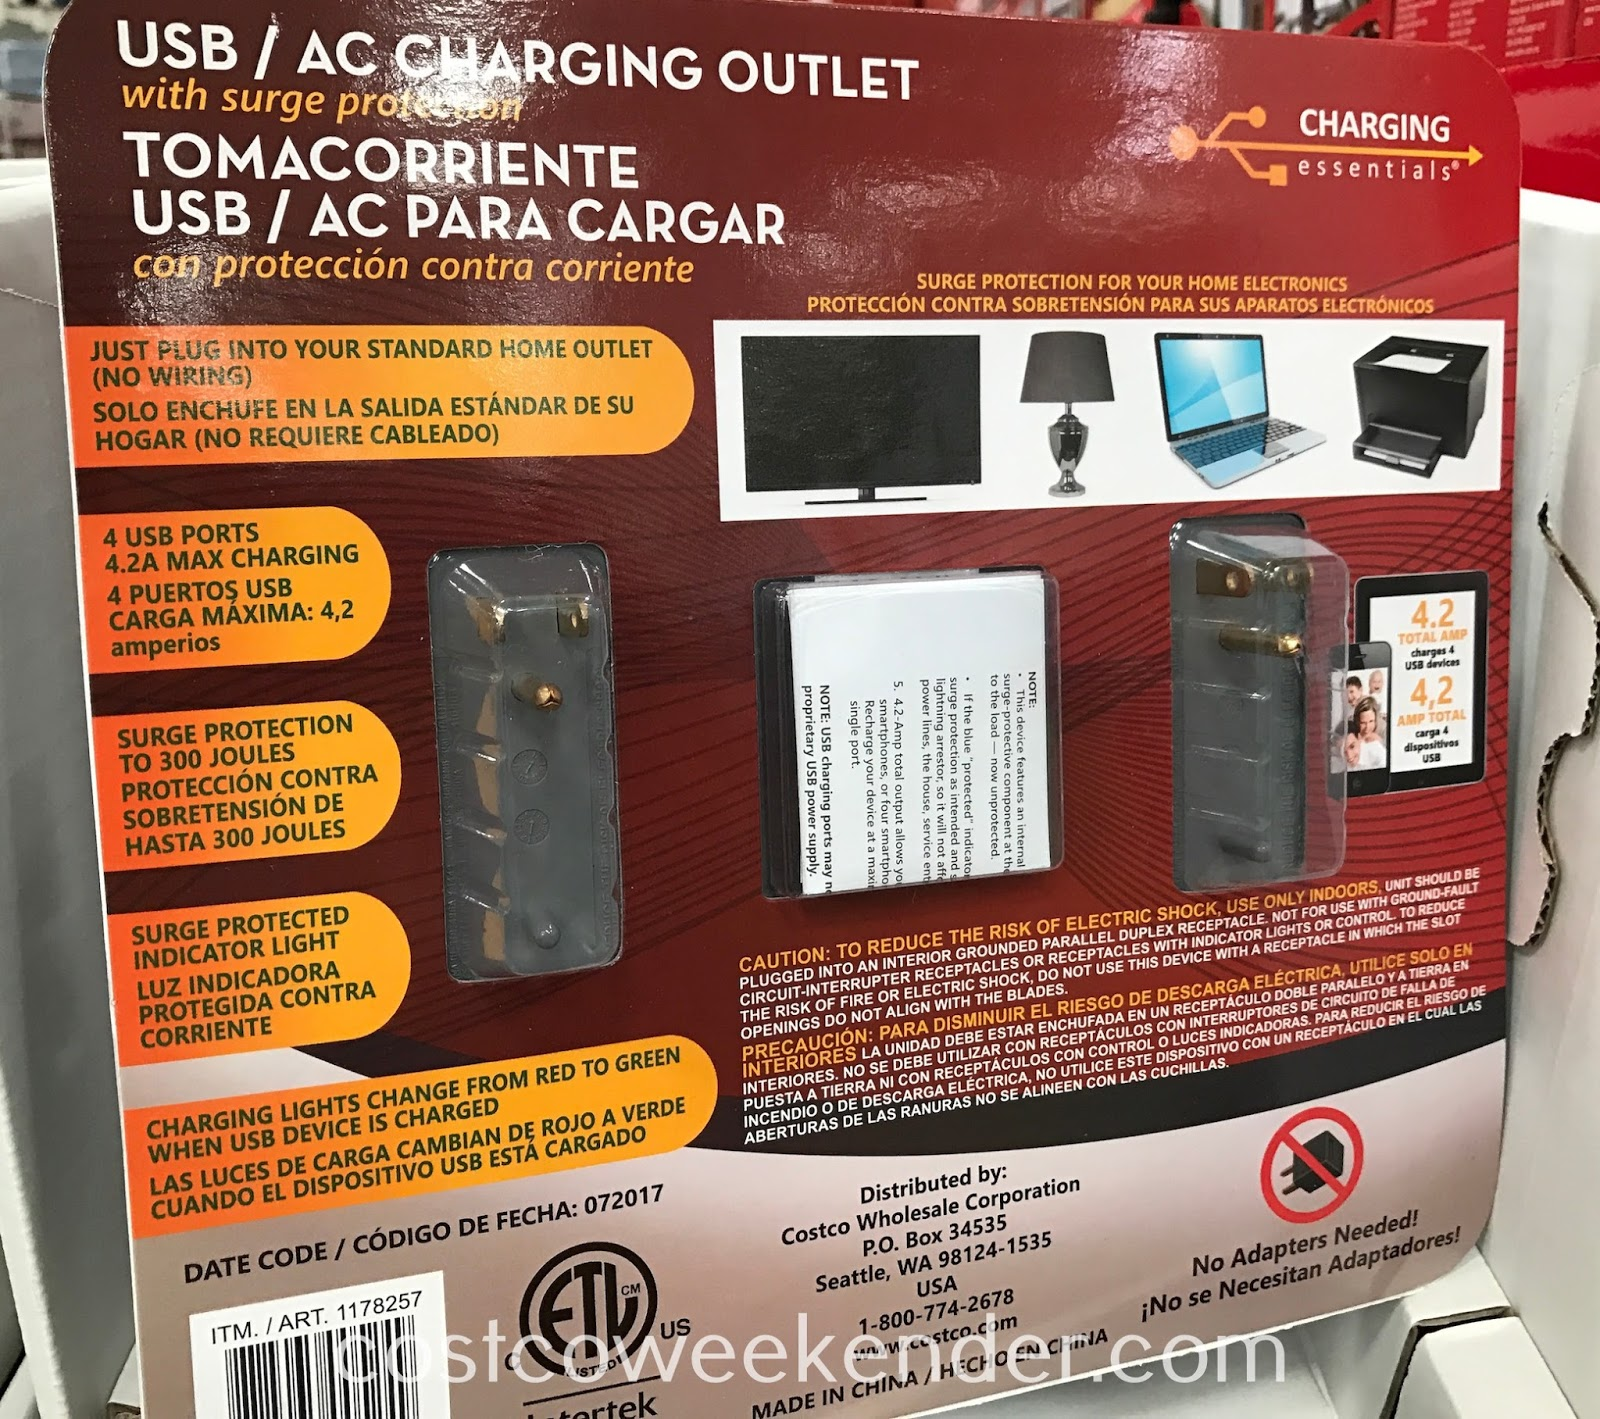 Costco 1178257 - Charging Essentials USB AC Charging Outlet: just plug into your standard home outlet